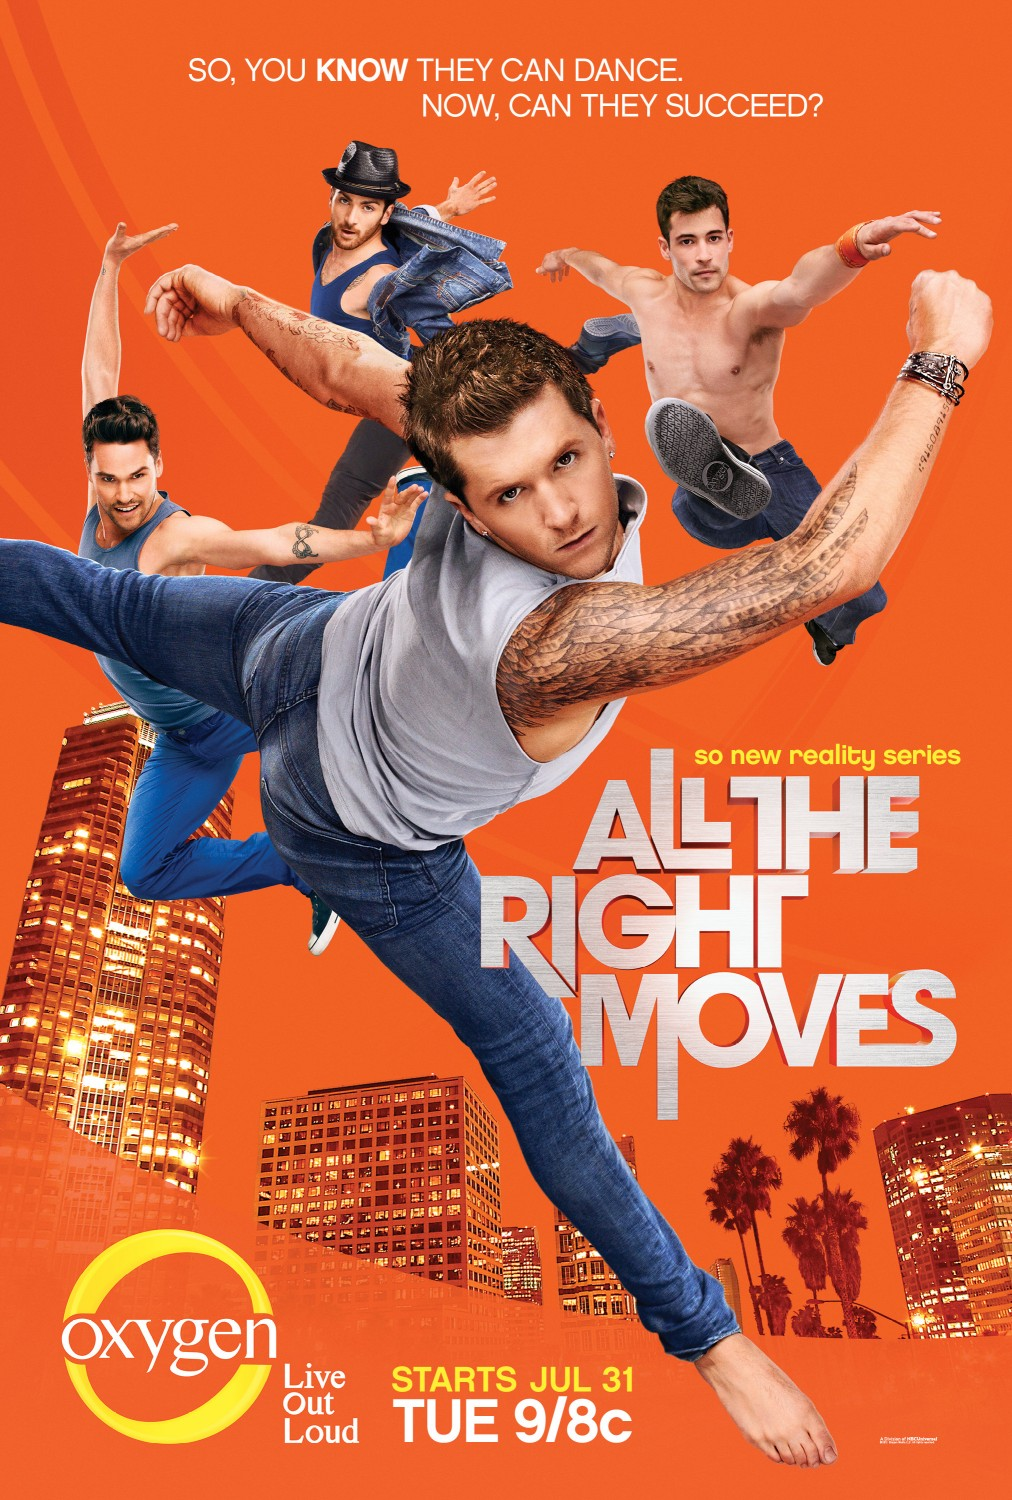 All the Right Moves oxygen Travis Wall